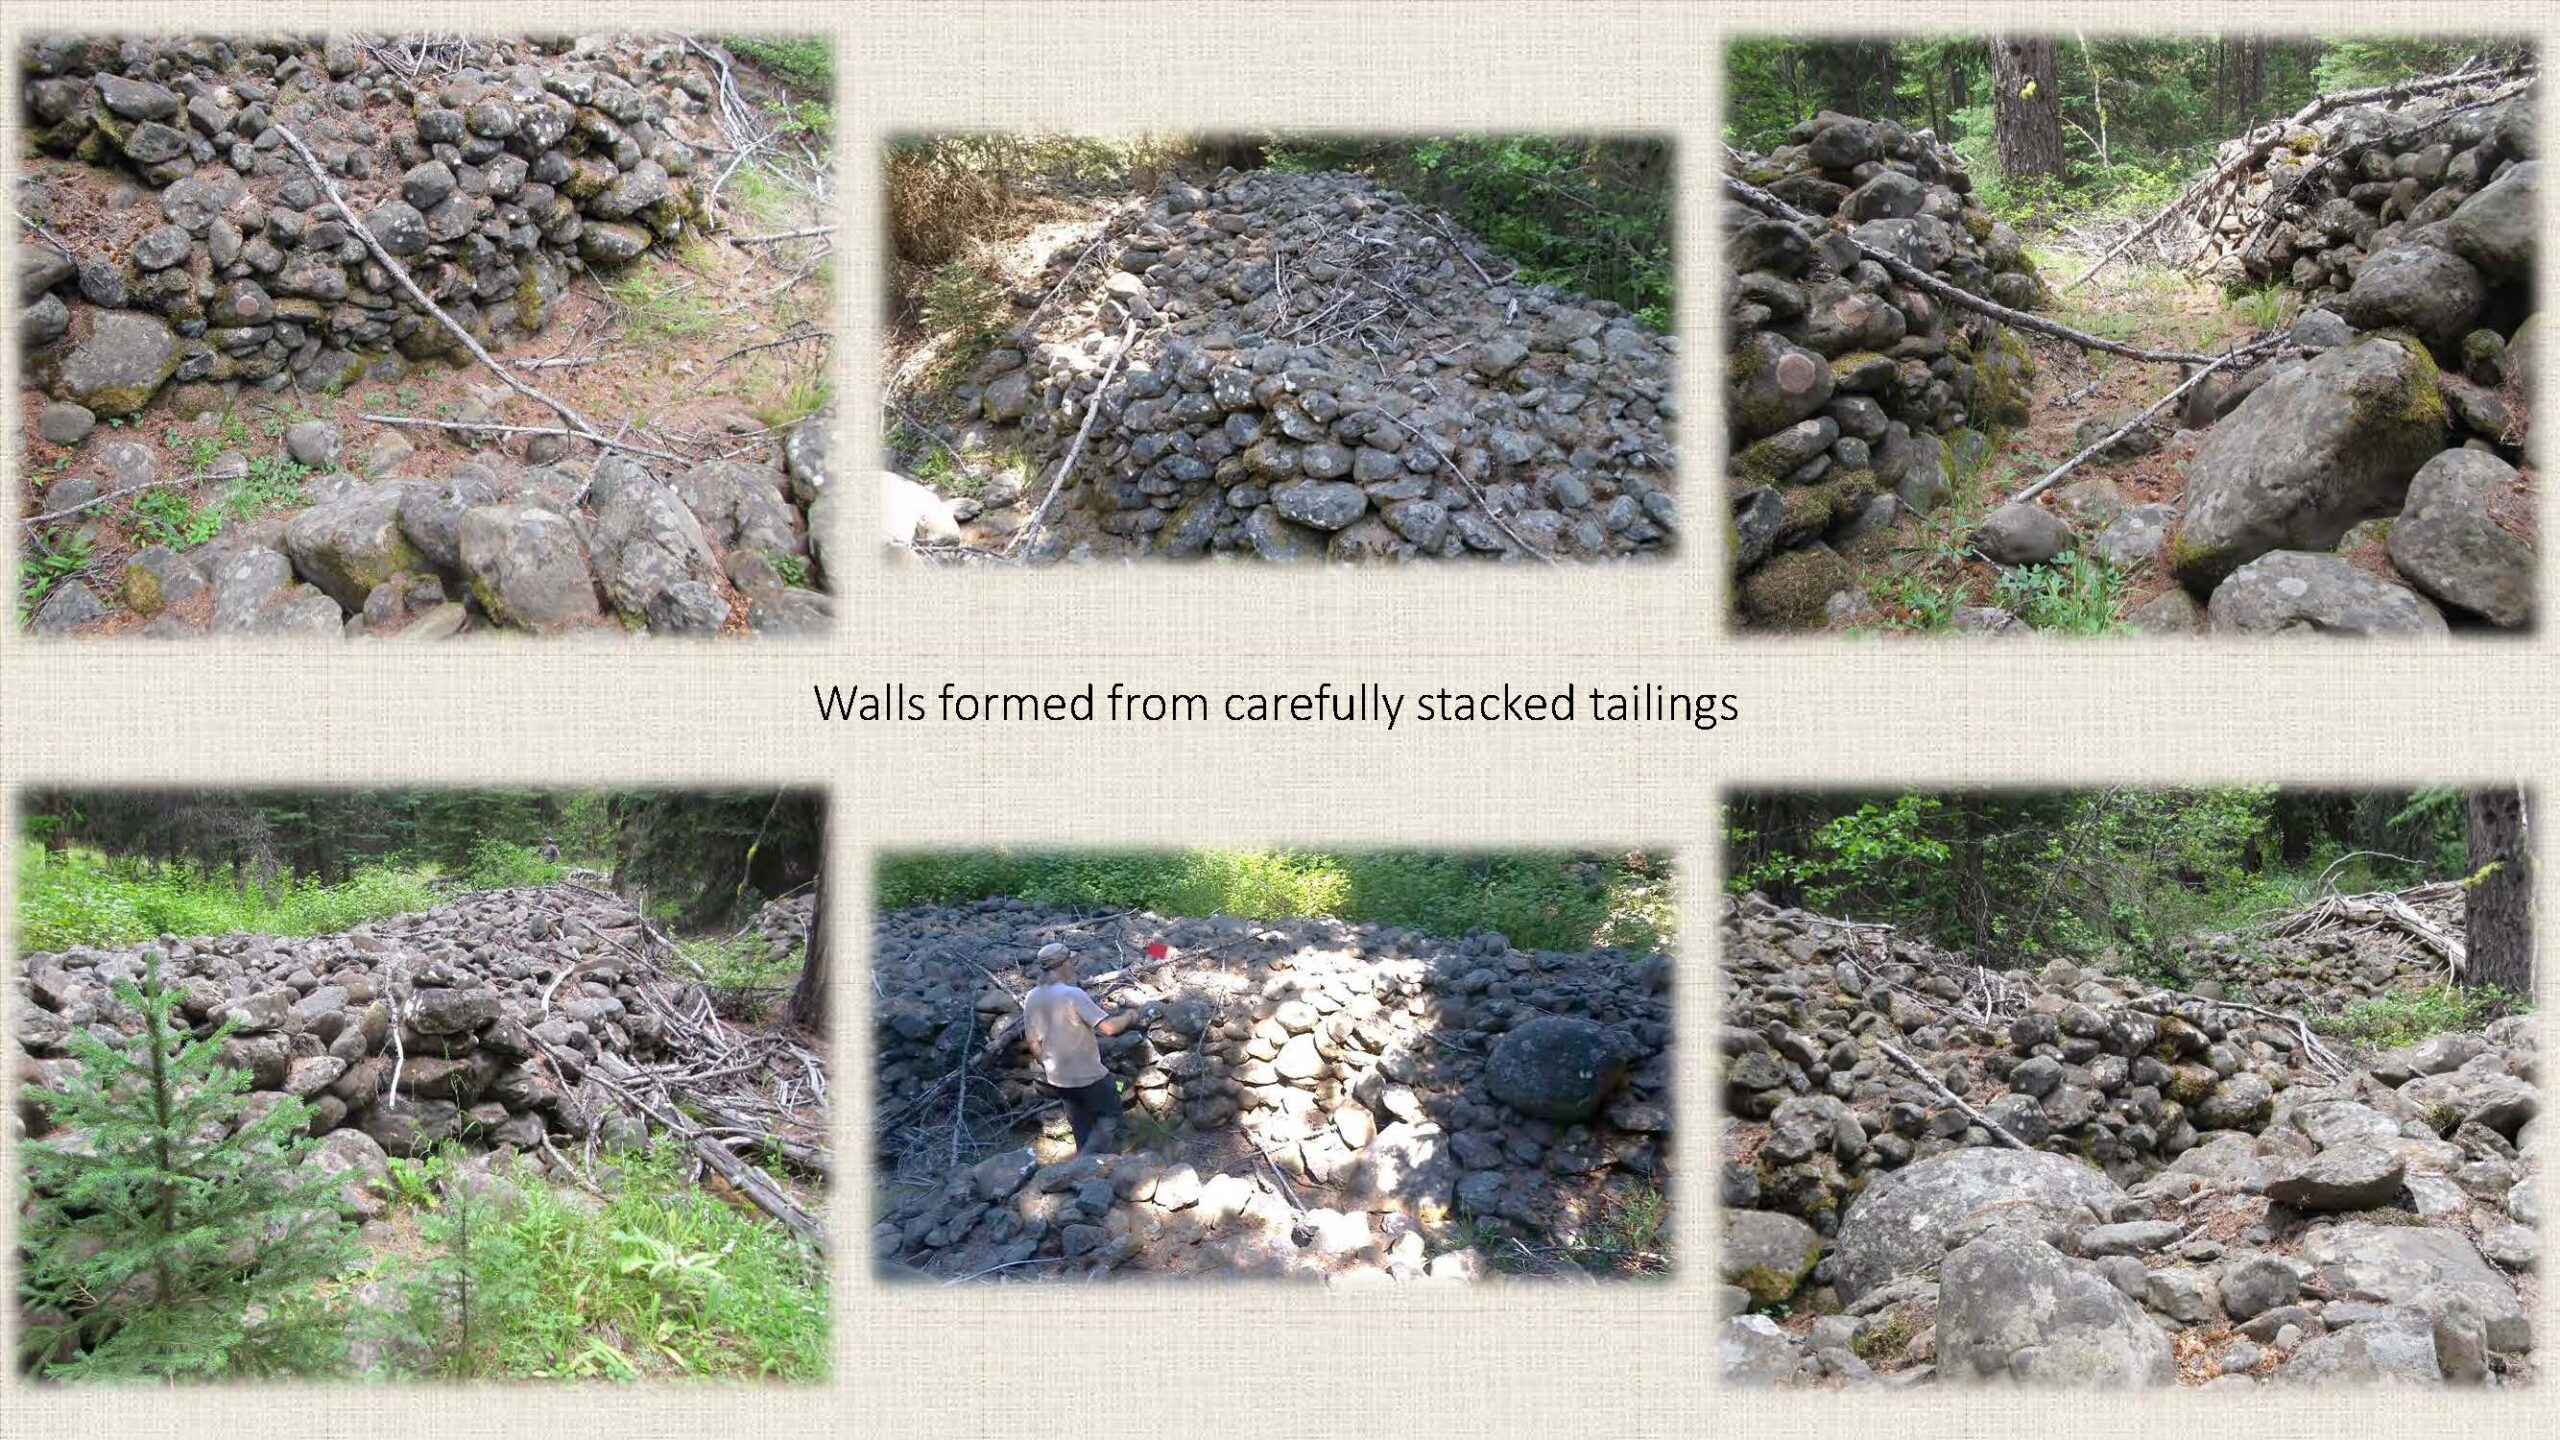 Walls formed from carefully stacked tailings